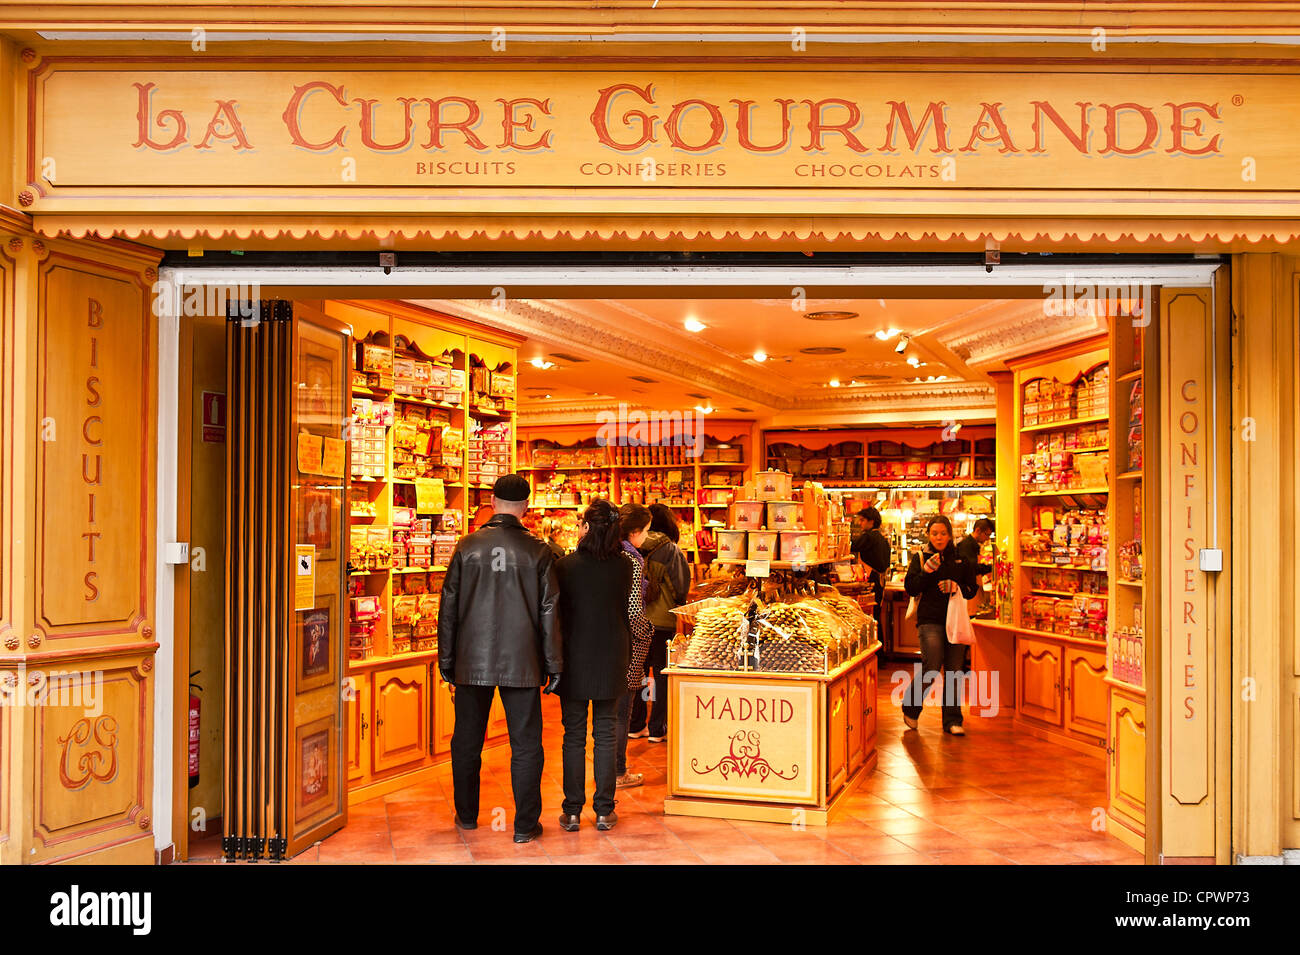 La Cure Gourmande, Madrid, Spain - Stock Image